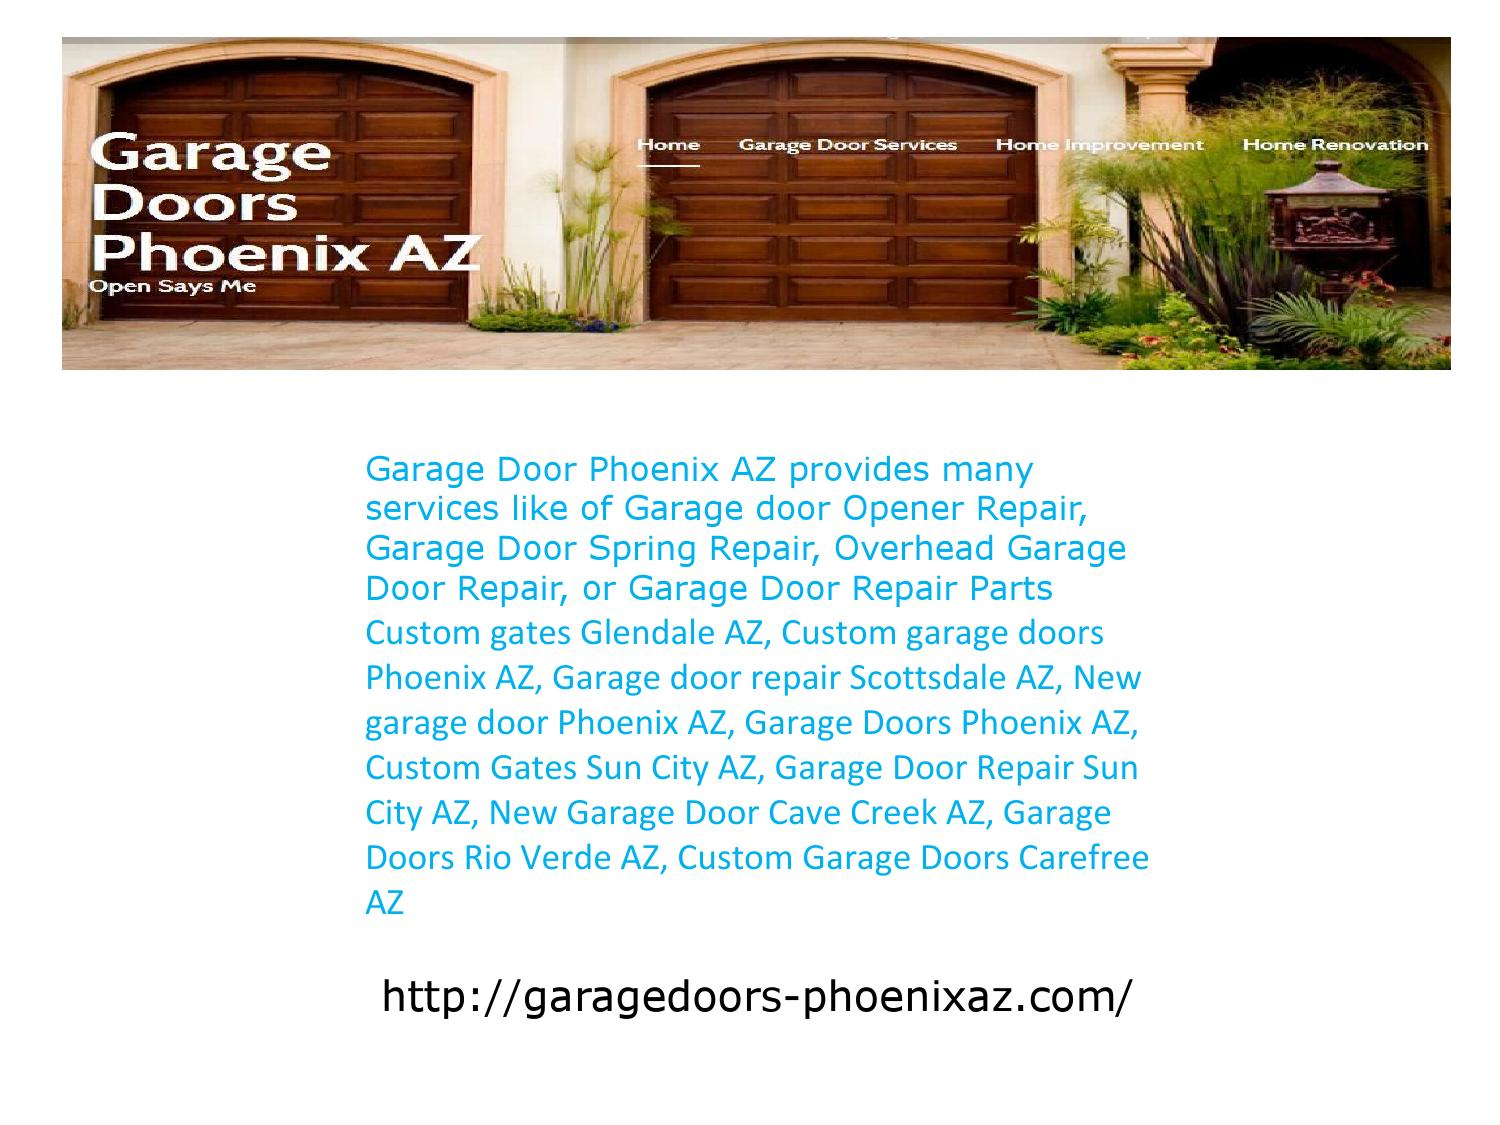 custom gates garage doors repair and new garage door